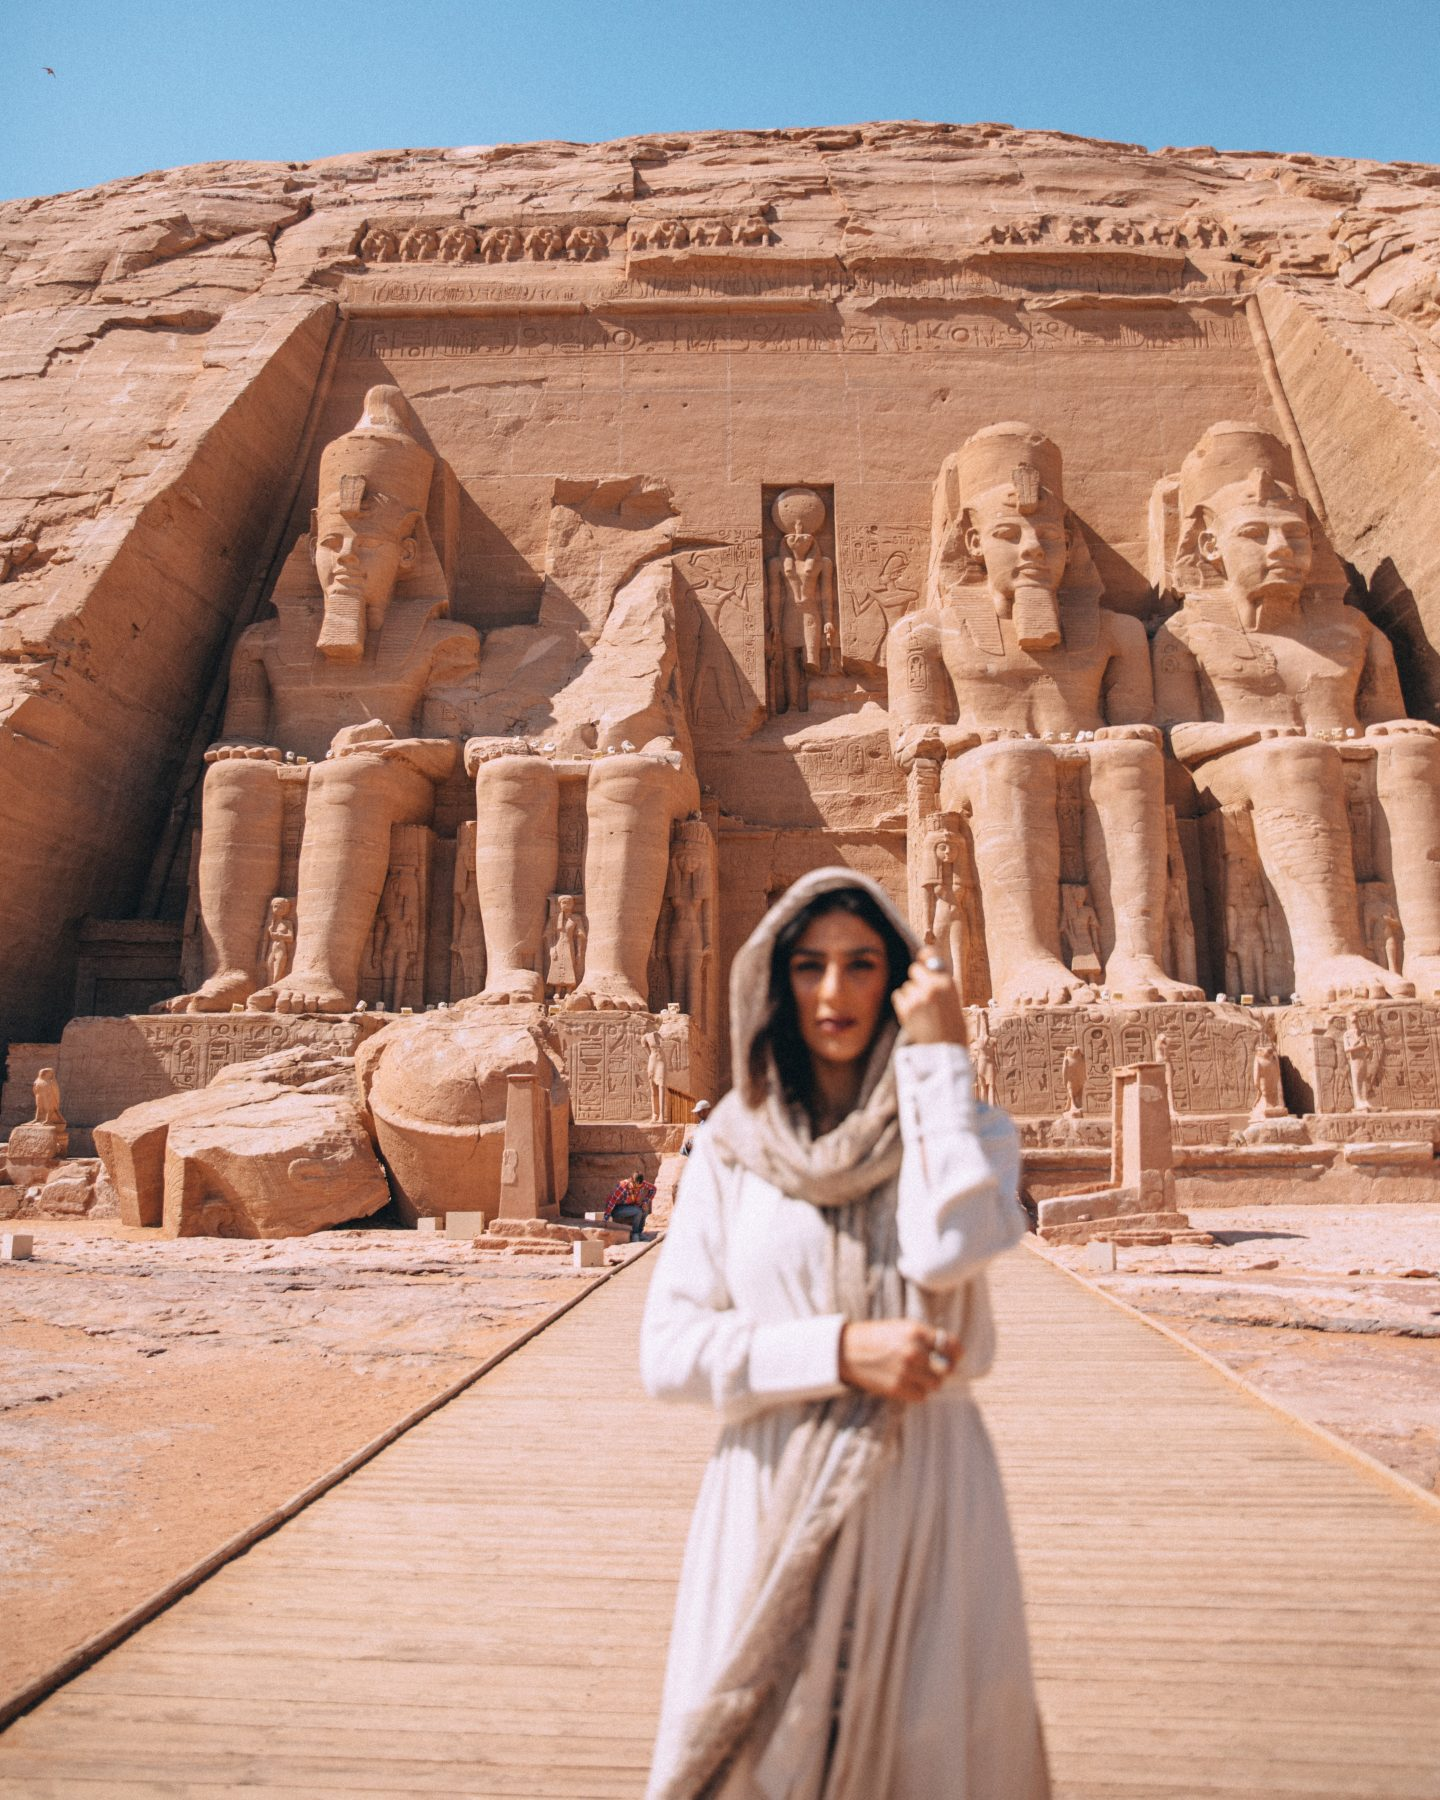 A woman in front of the temples at Abu Simbel in Egypt